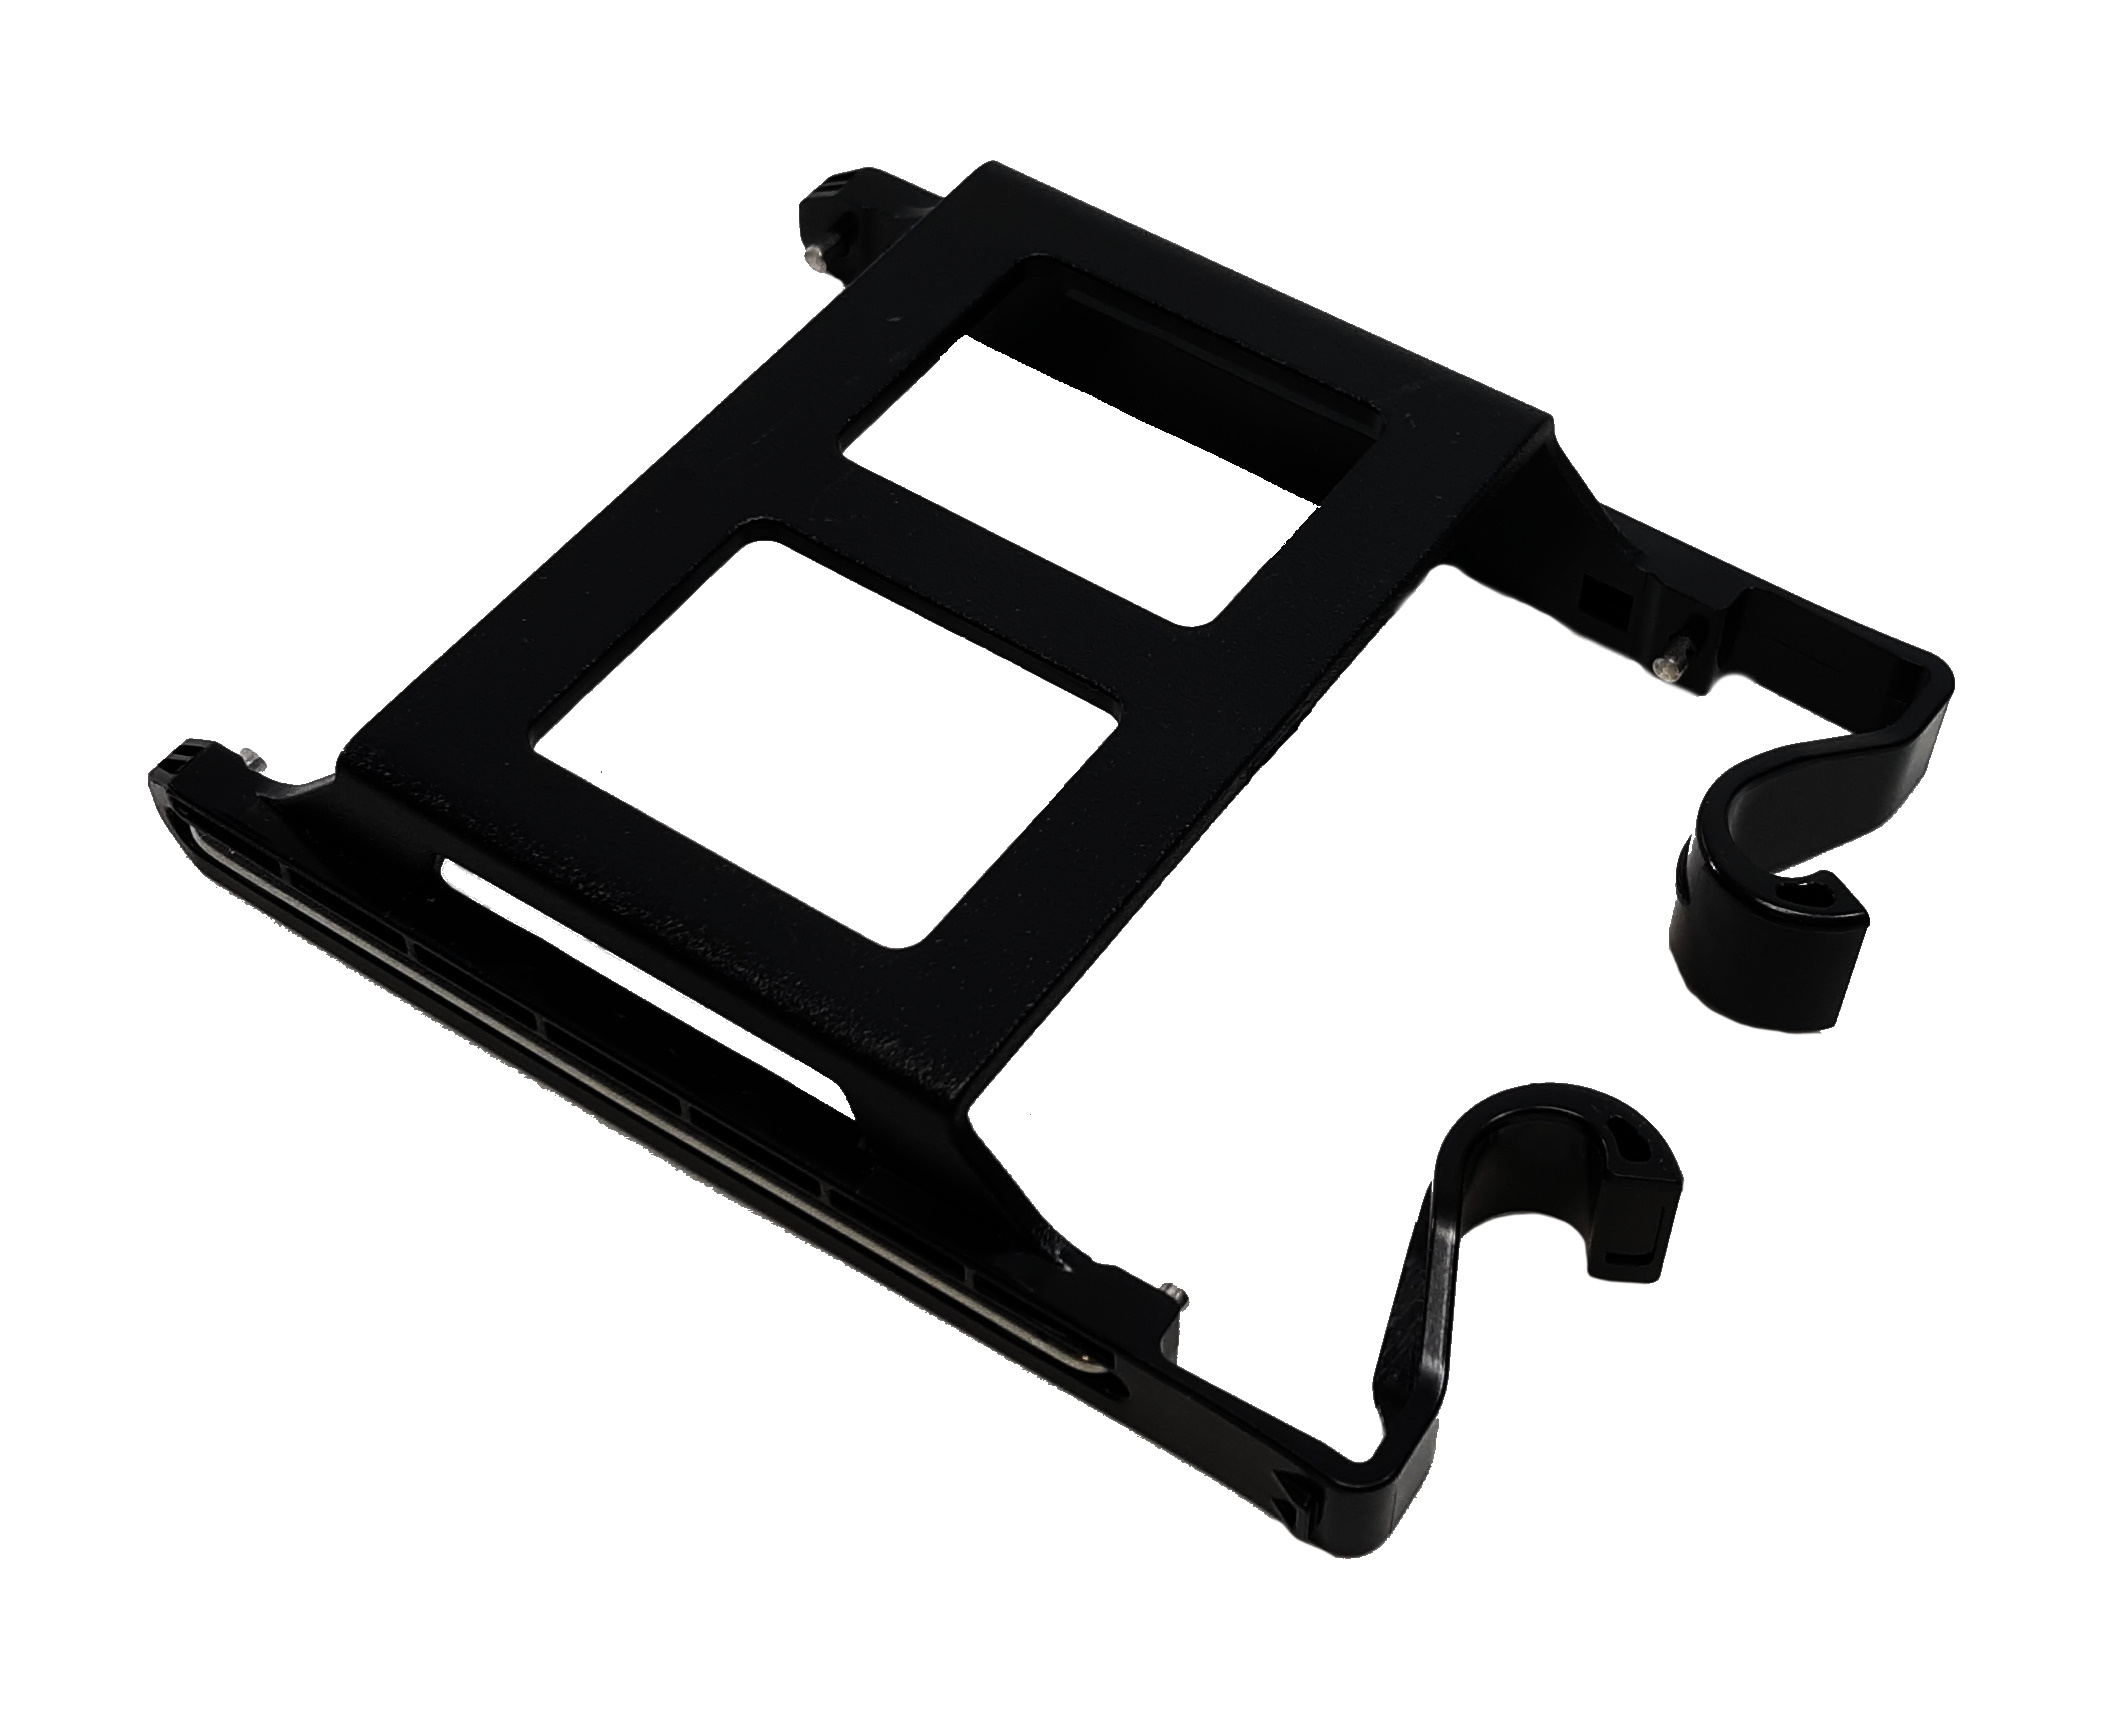 HP SSD to HDD Caddy Carrier Adapter Tray C-3598 T1-15051 for J5T63AA 668261-001 675769-001